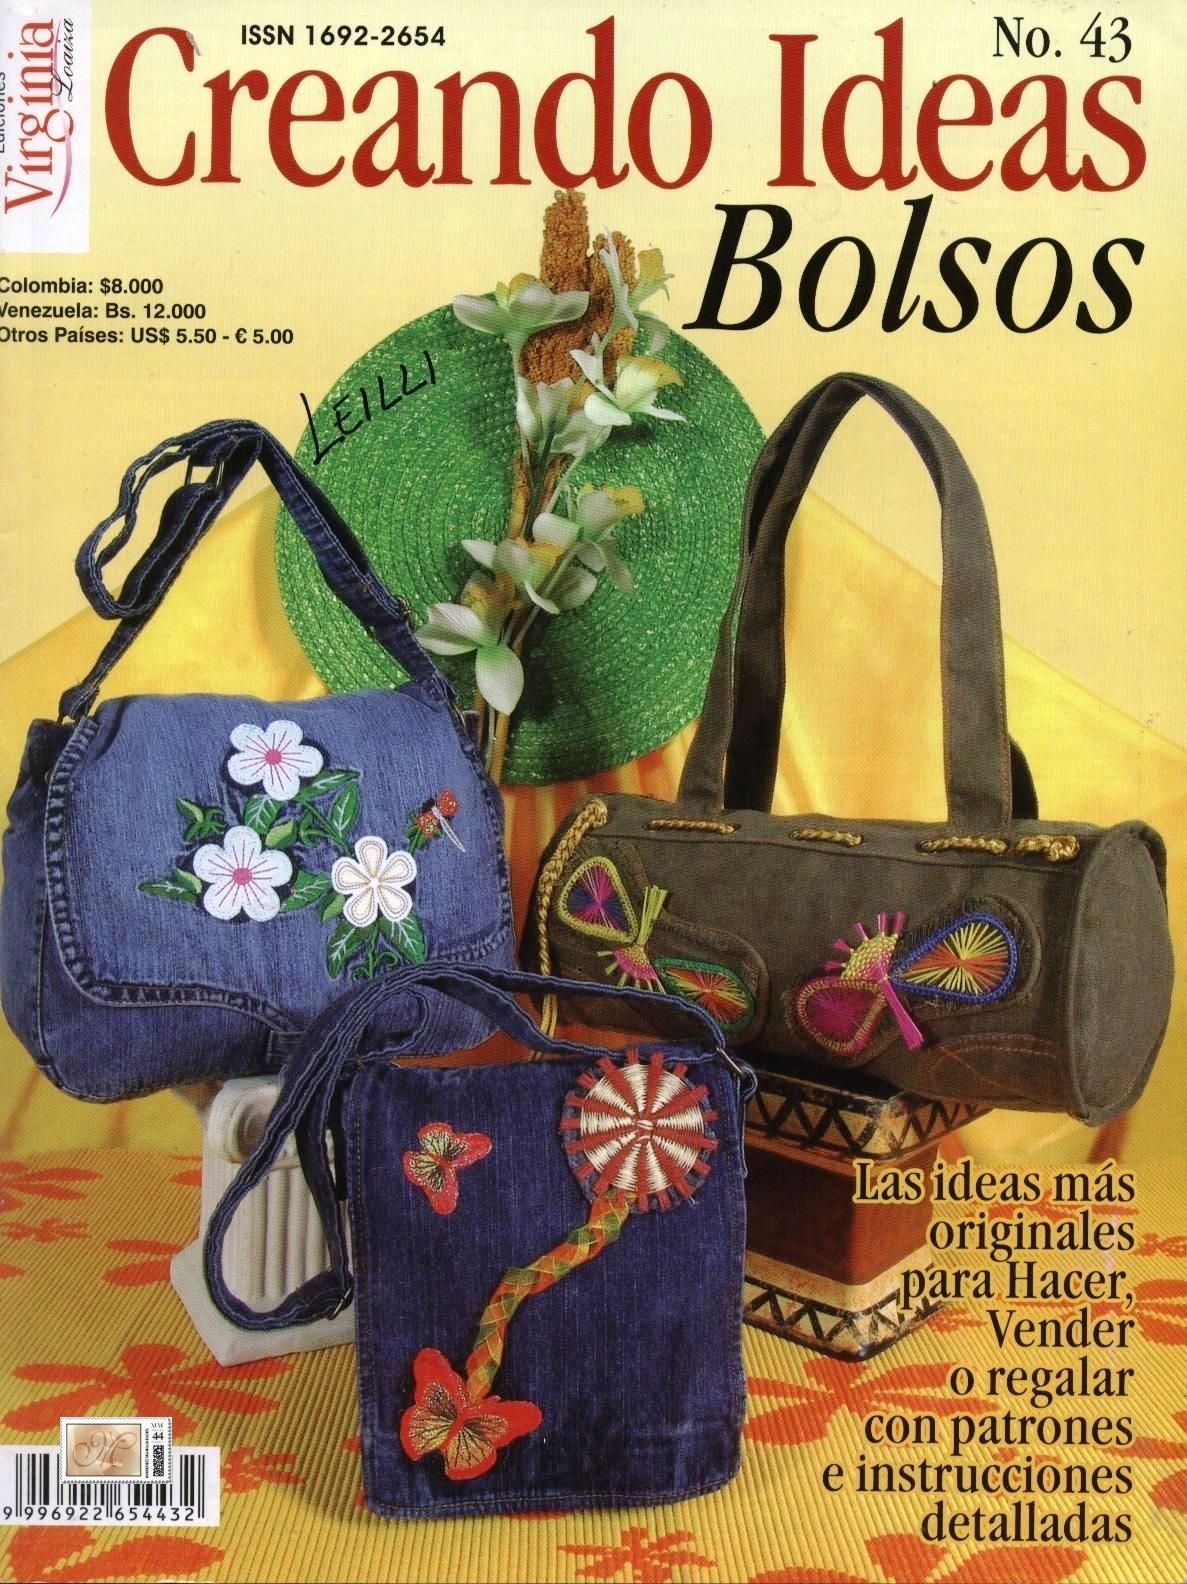 Revista: Creando ideas No. 43. Bolsos